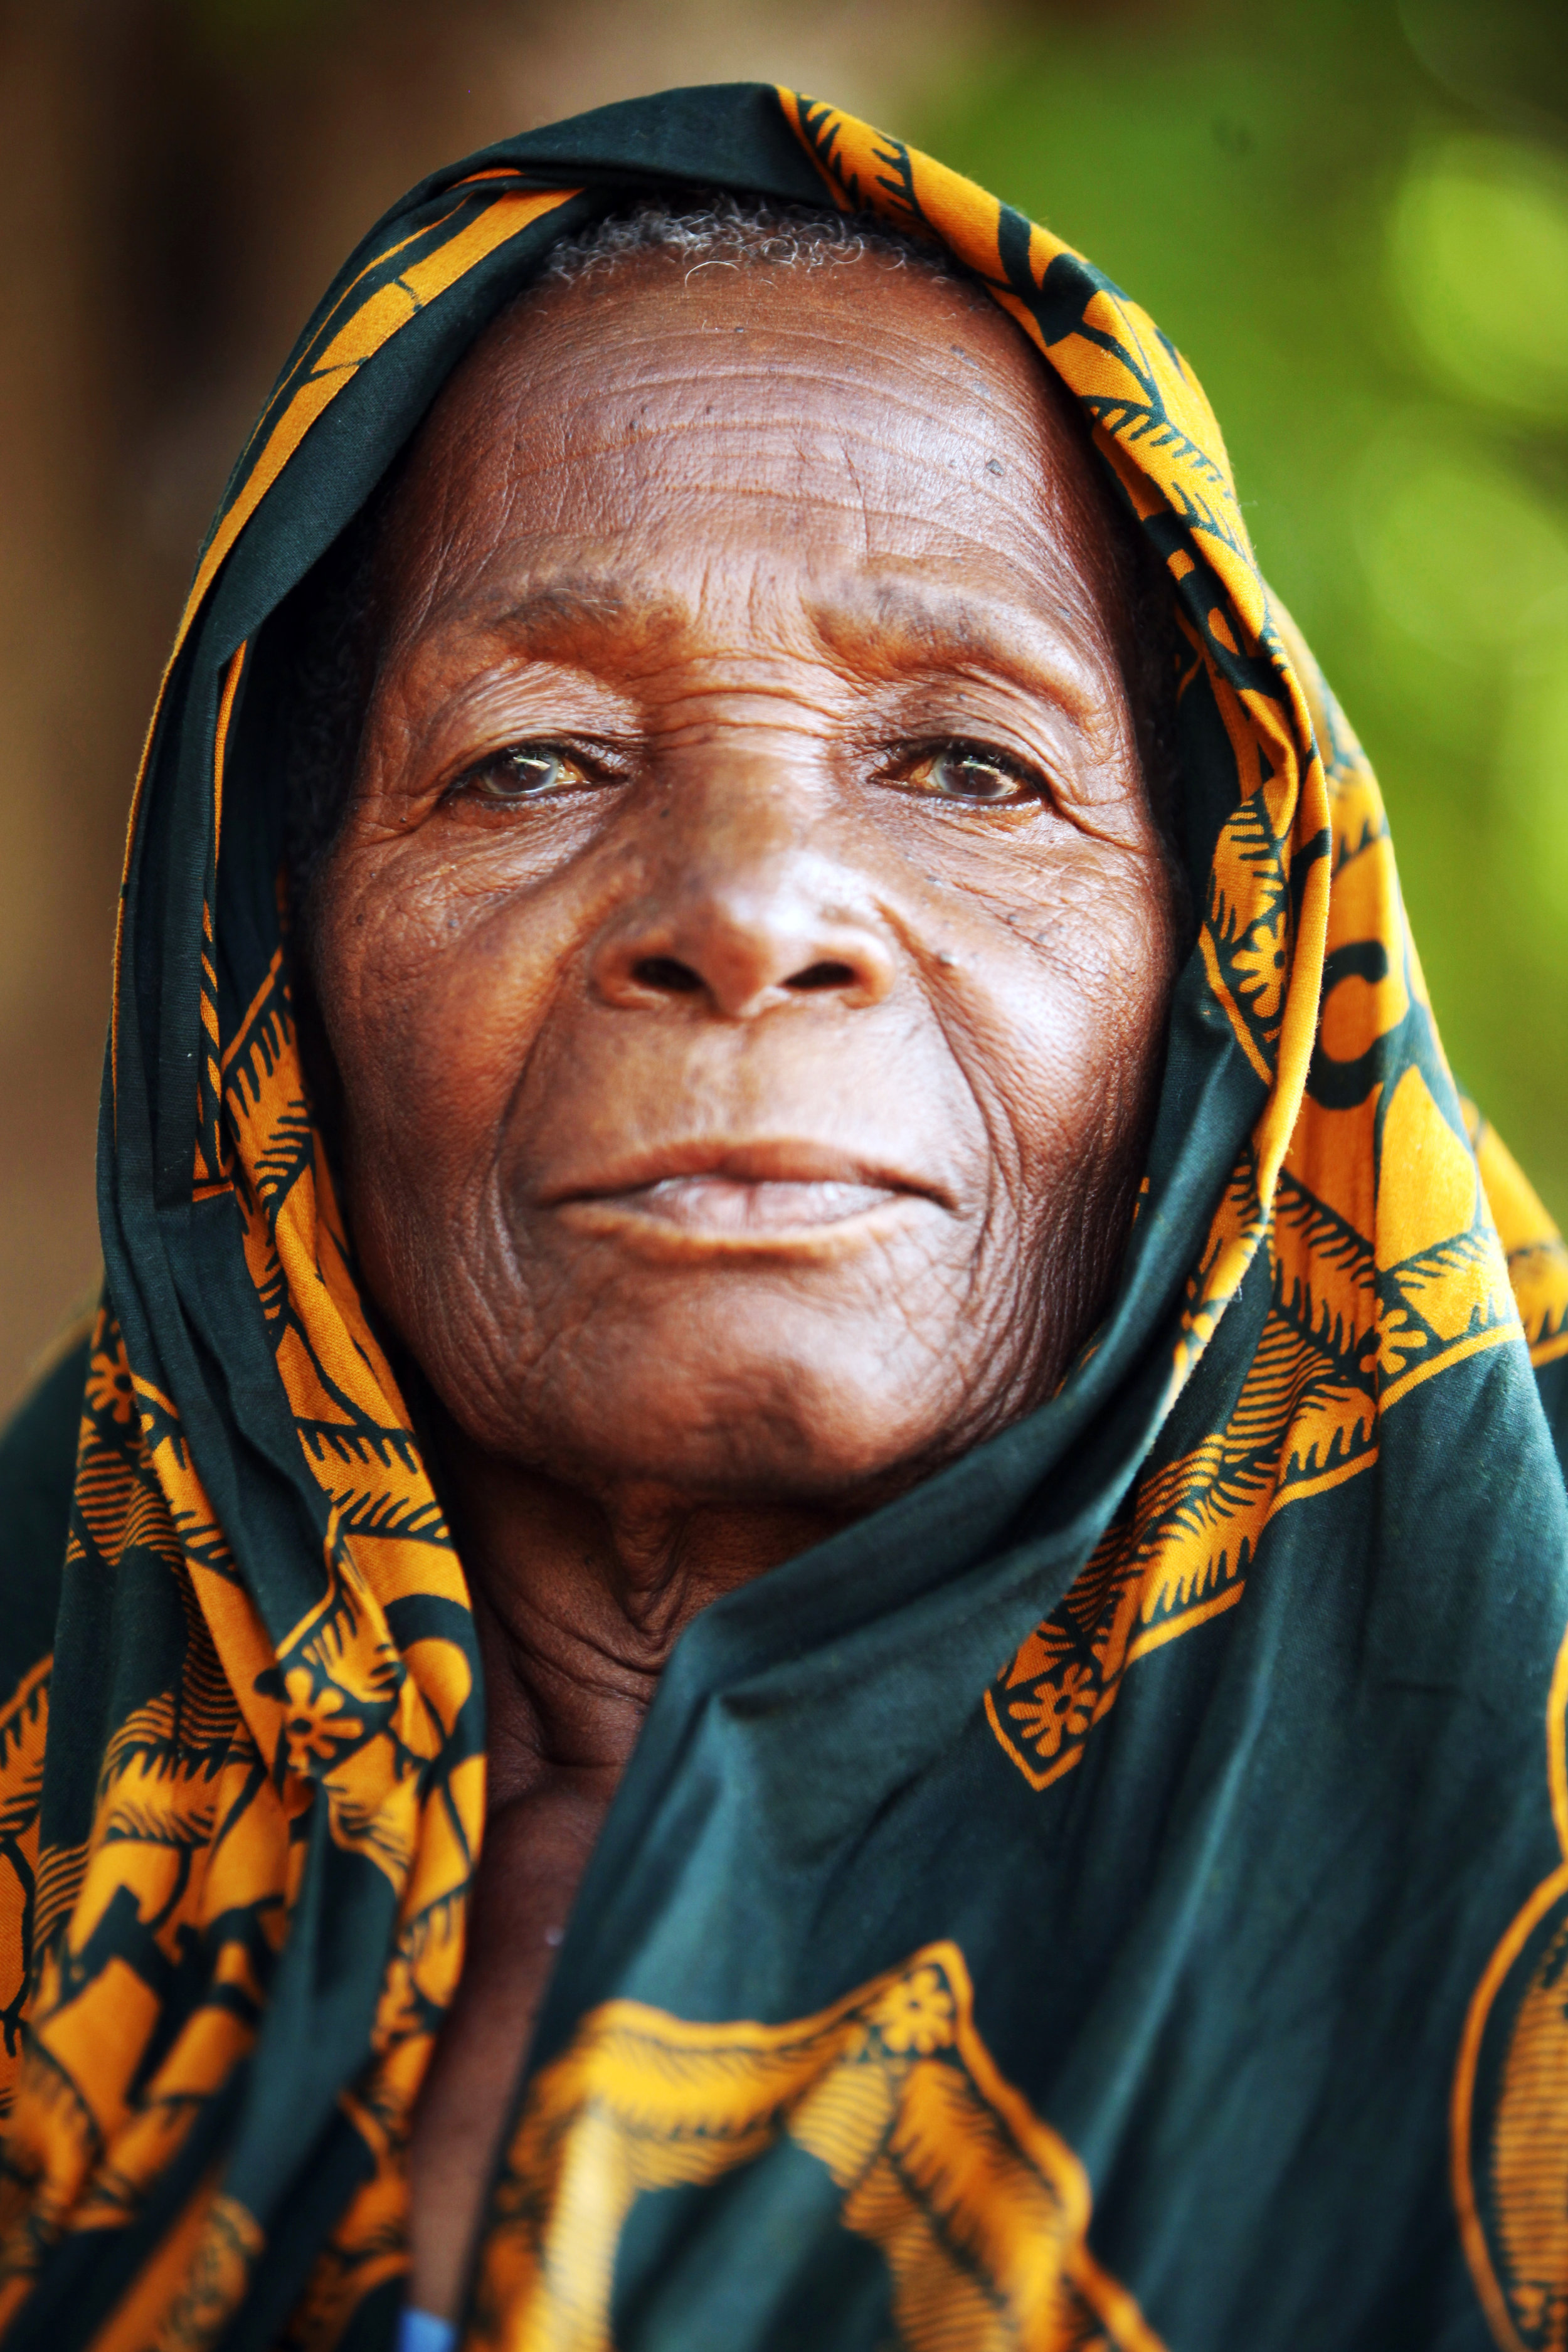 Stigma and inaccessible services means women can live with fistula for decades without treatment. Photo credit: Benjamin Eagle